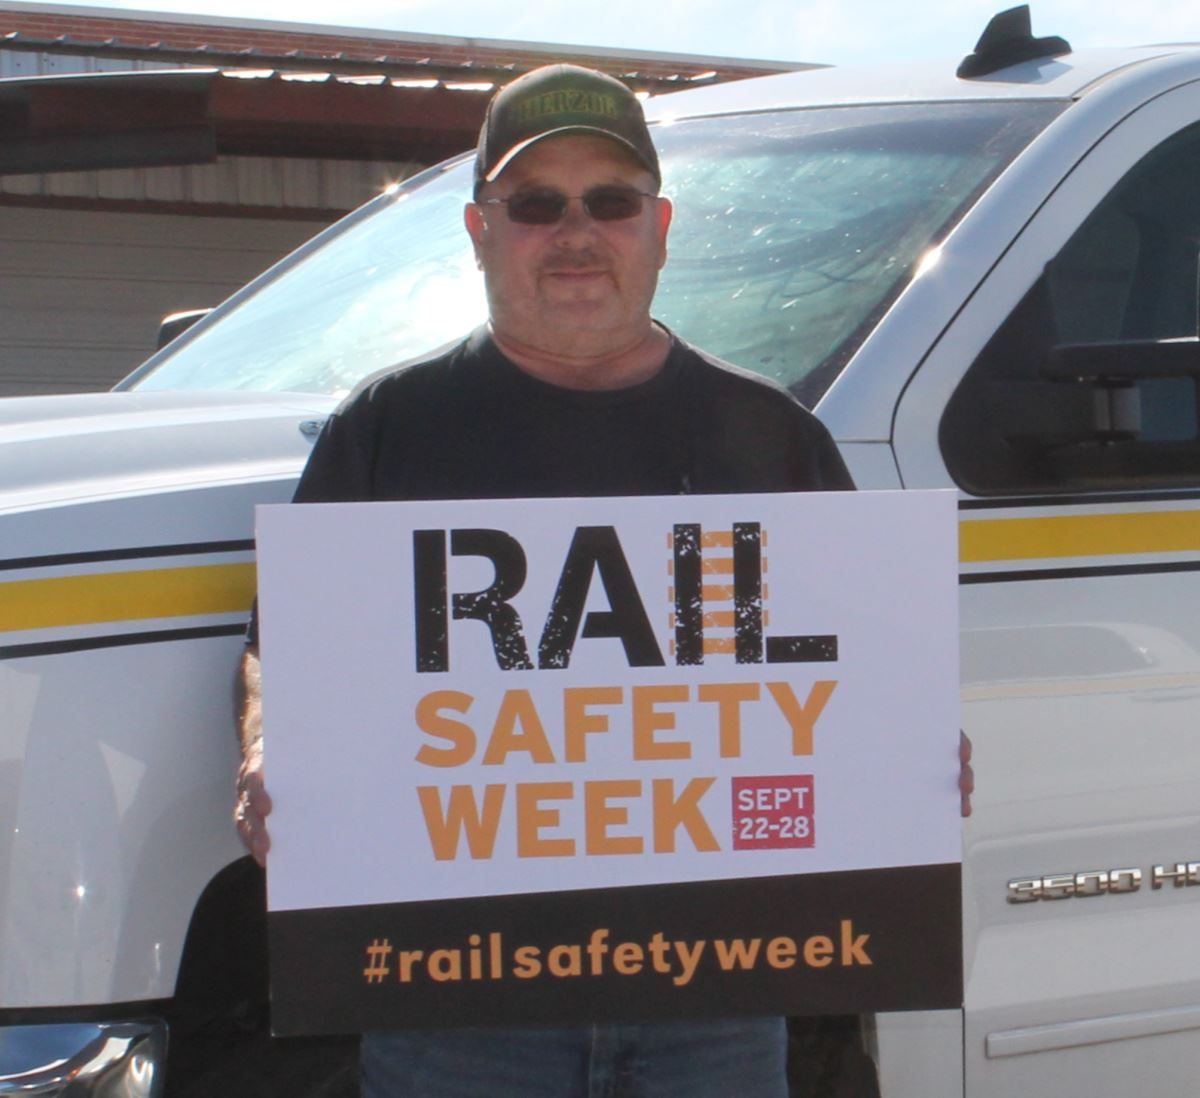 Hi-rail working holding rail safety sign